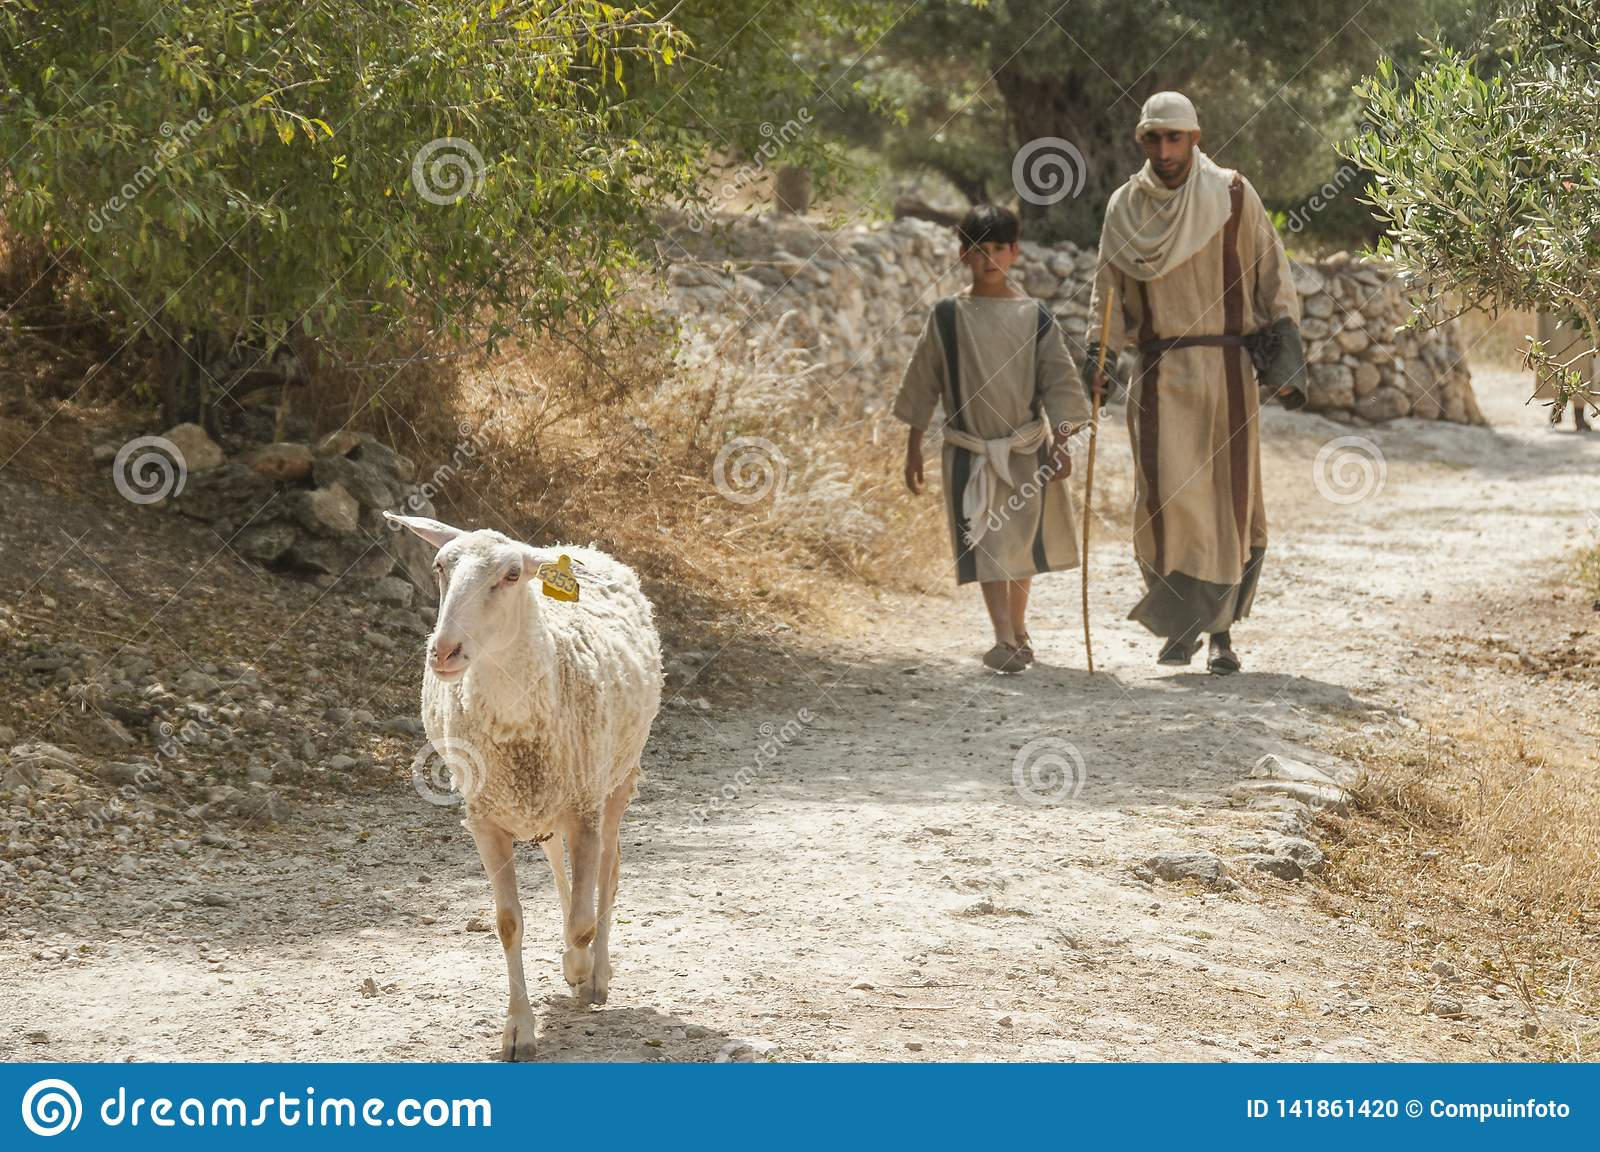 Boy and man with goat in nazareth israel